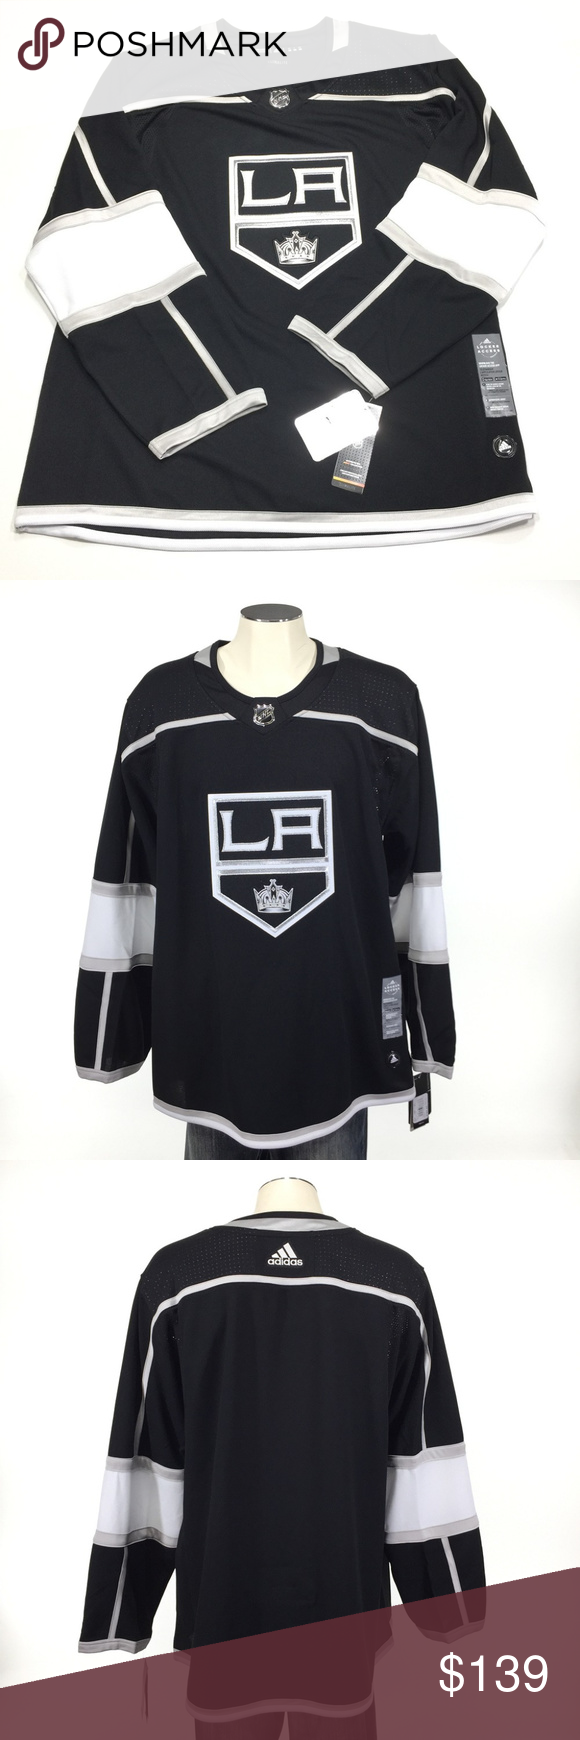 Los Angeles Kings Adidas Authentic Jersey Nwt With Images Adidas Shirt Adidas Clothes Design